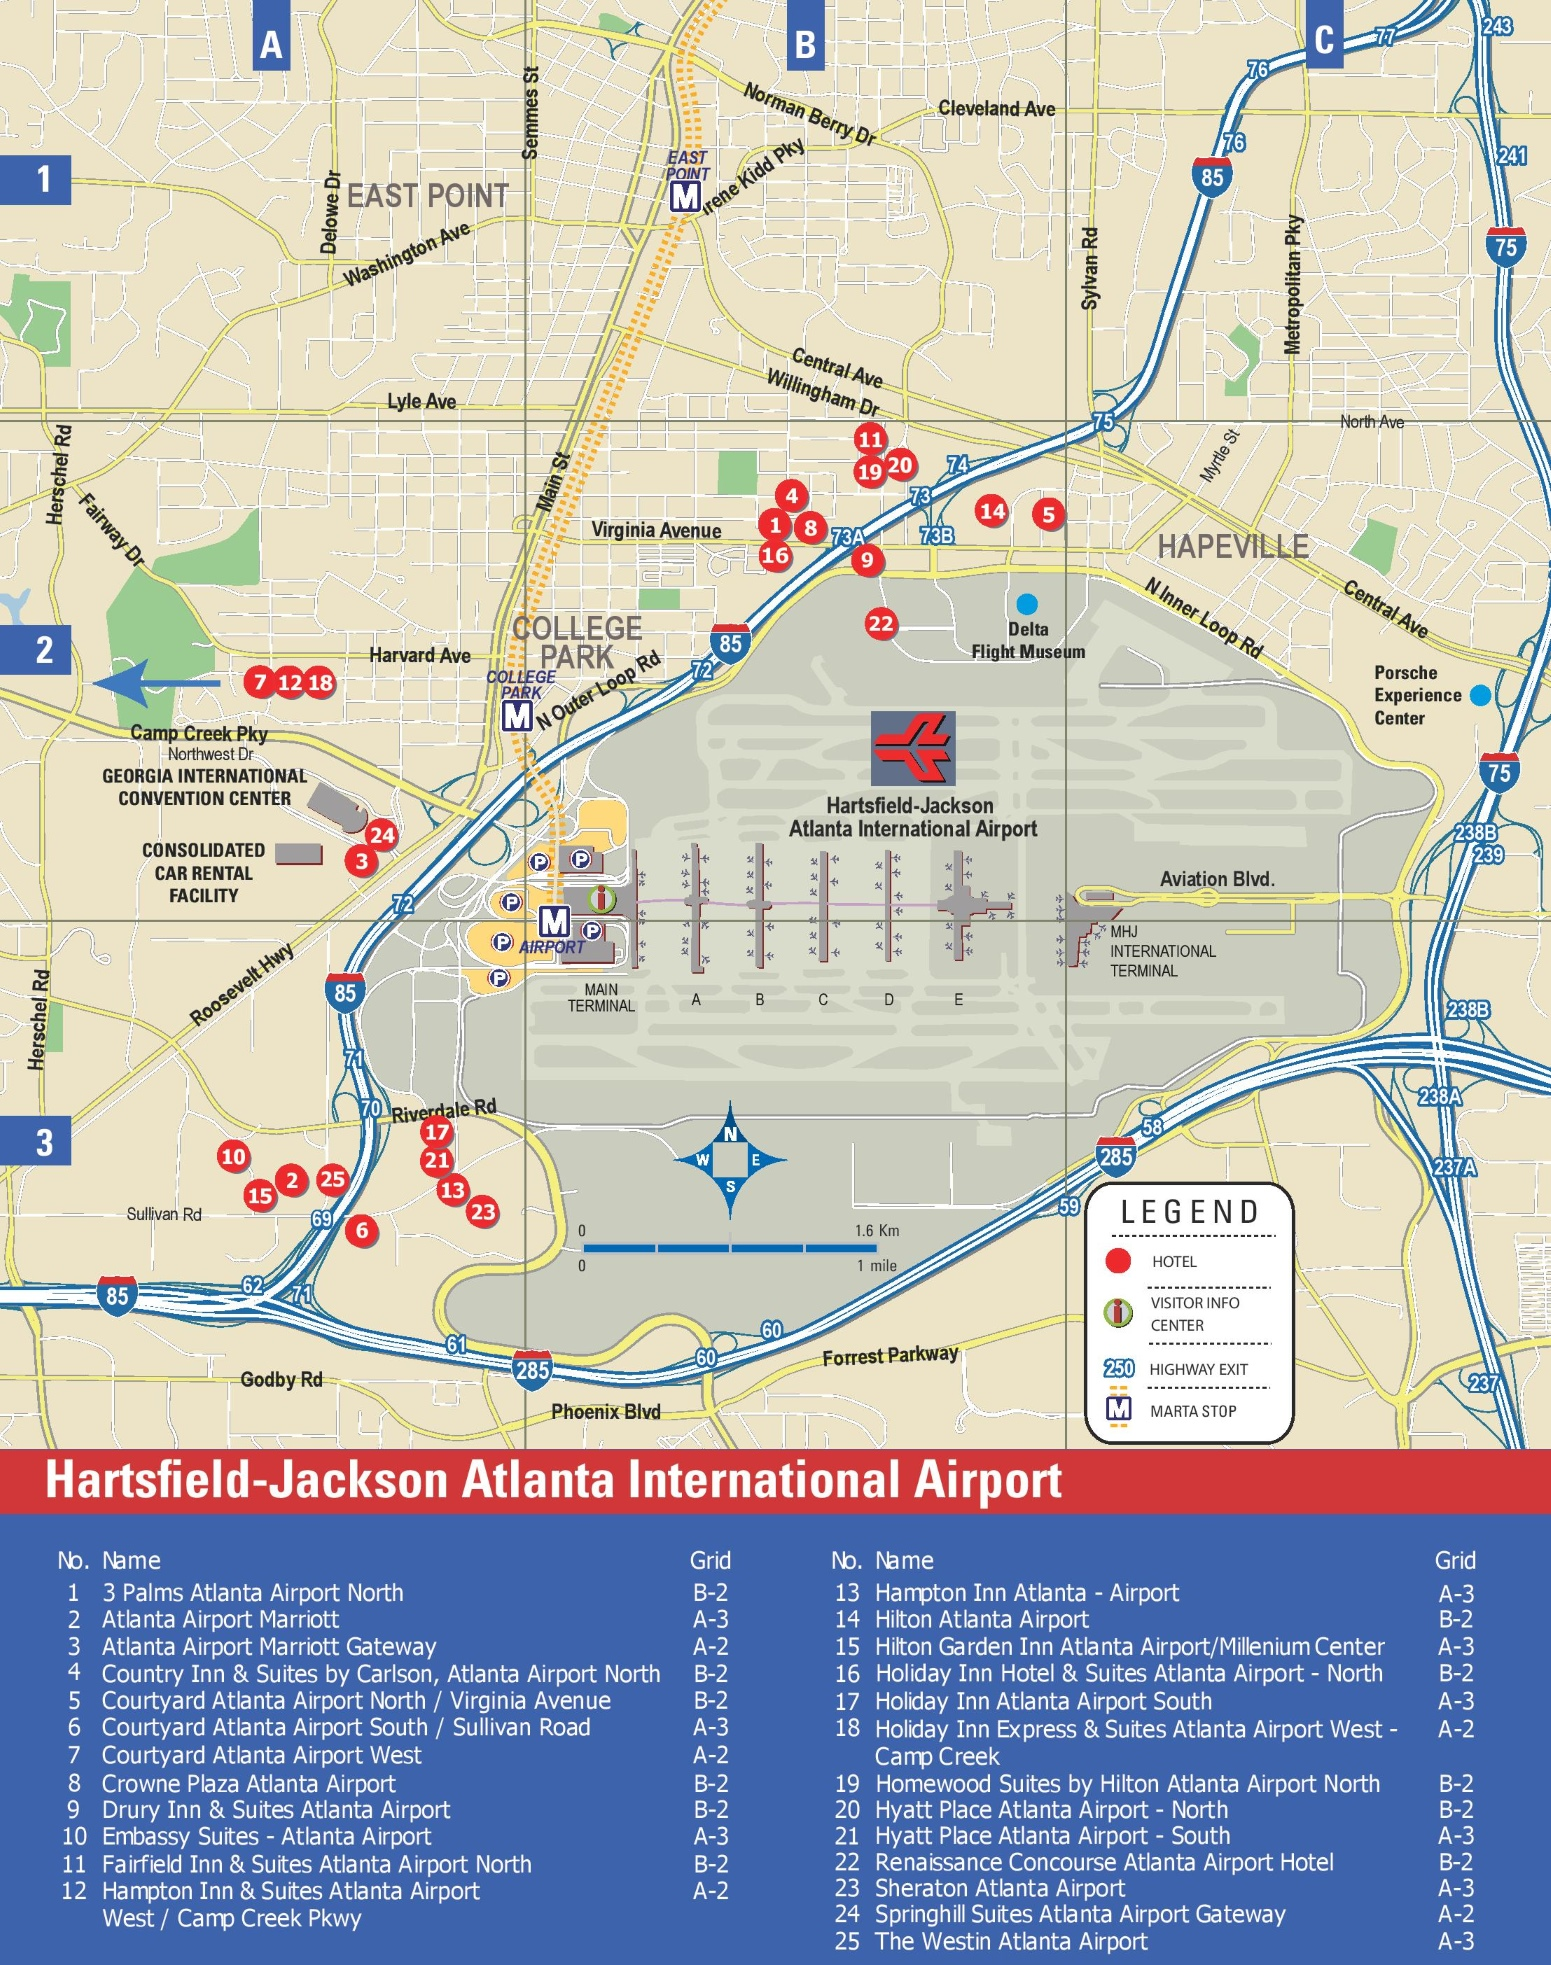 HartsfieldJackson Atlanta International Airport - Usa airports on the map